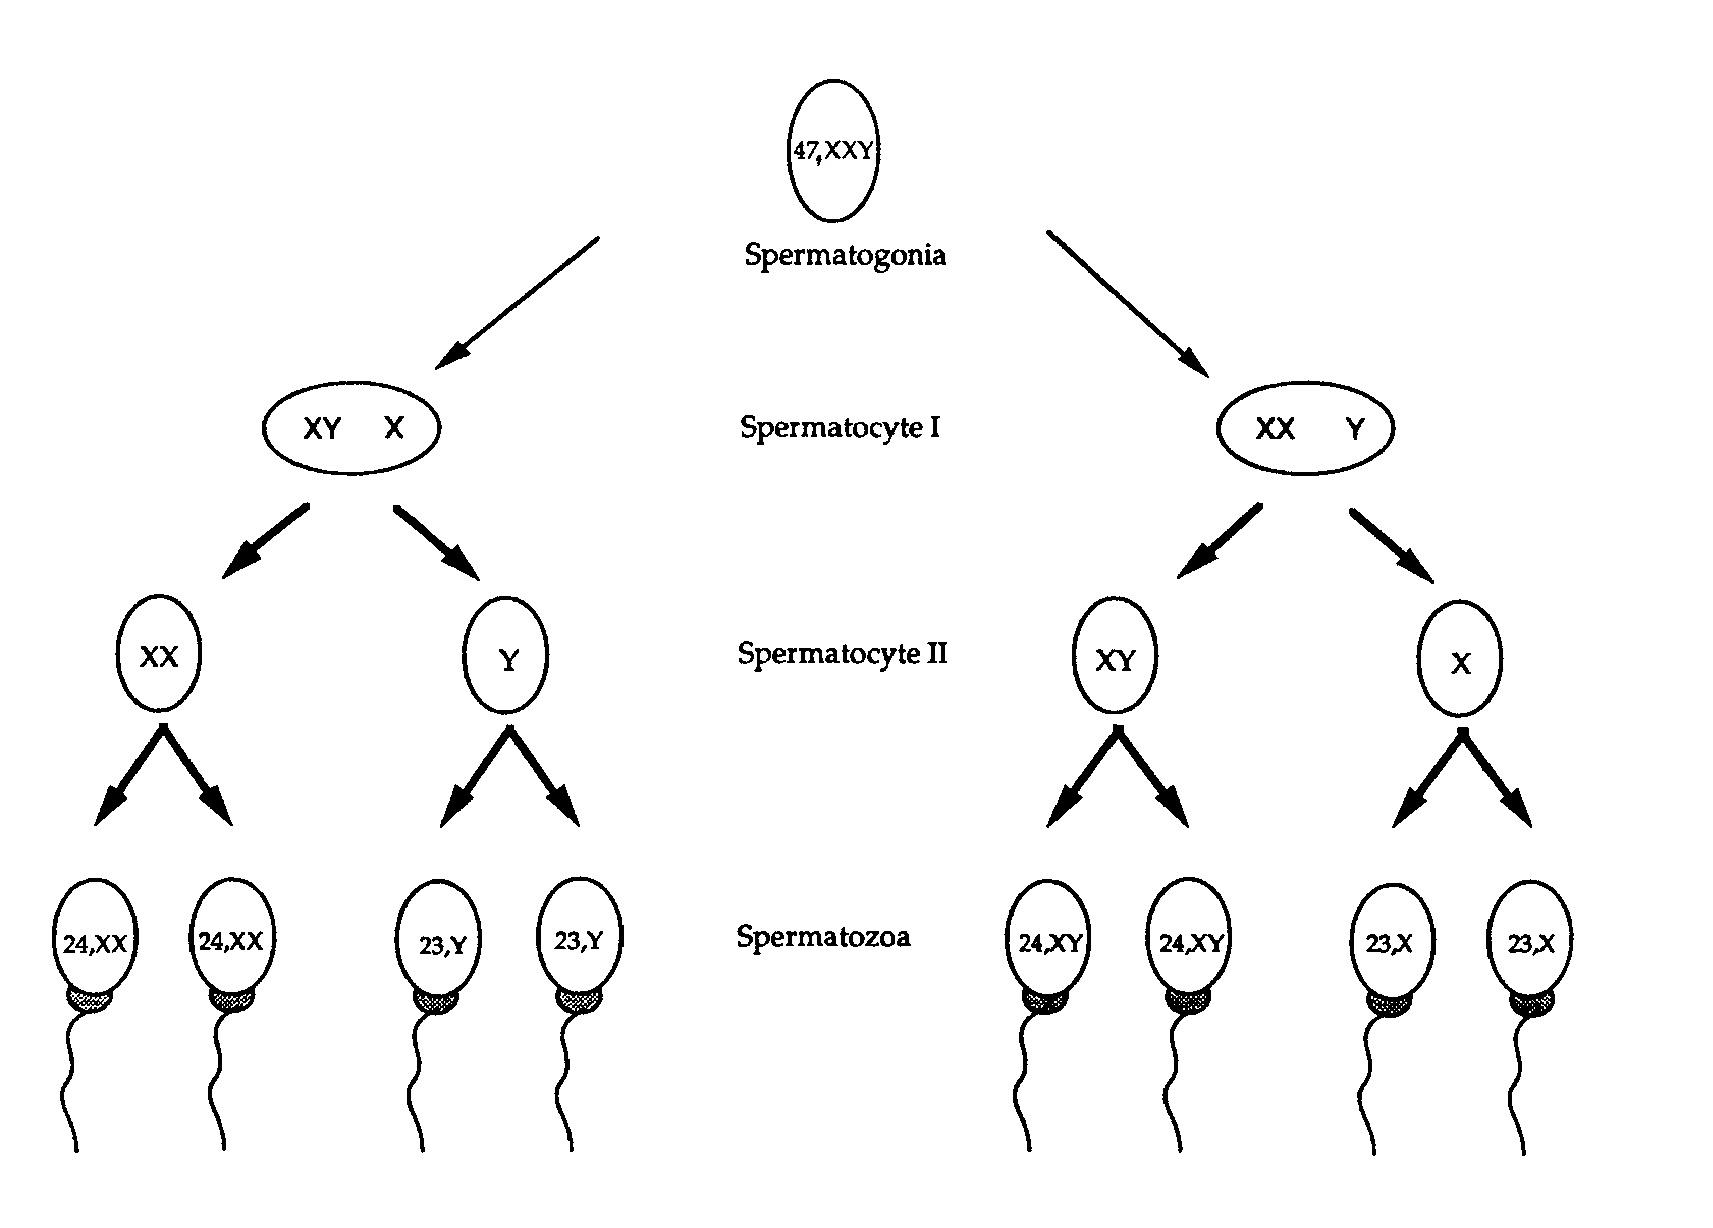 Xyy Syndrome Karyotype Possible XXY meiosis pathways